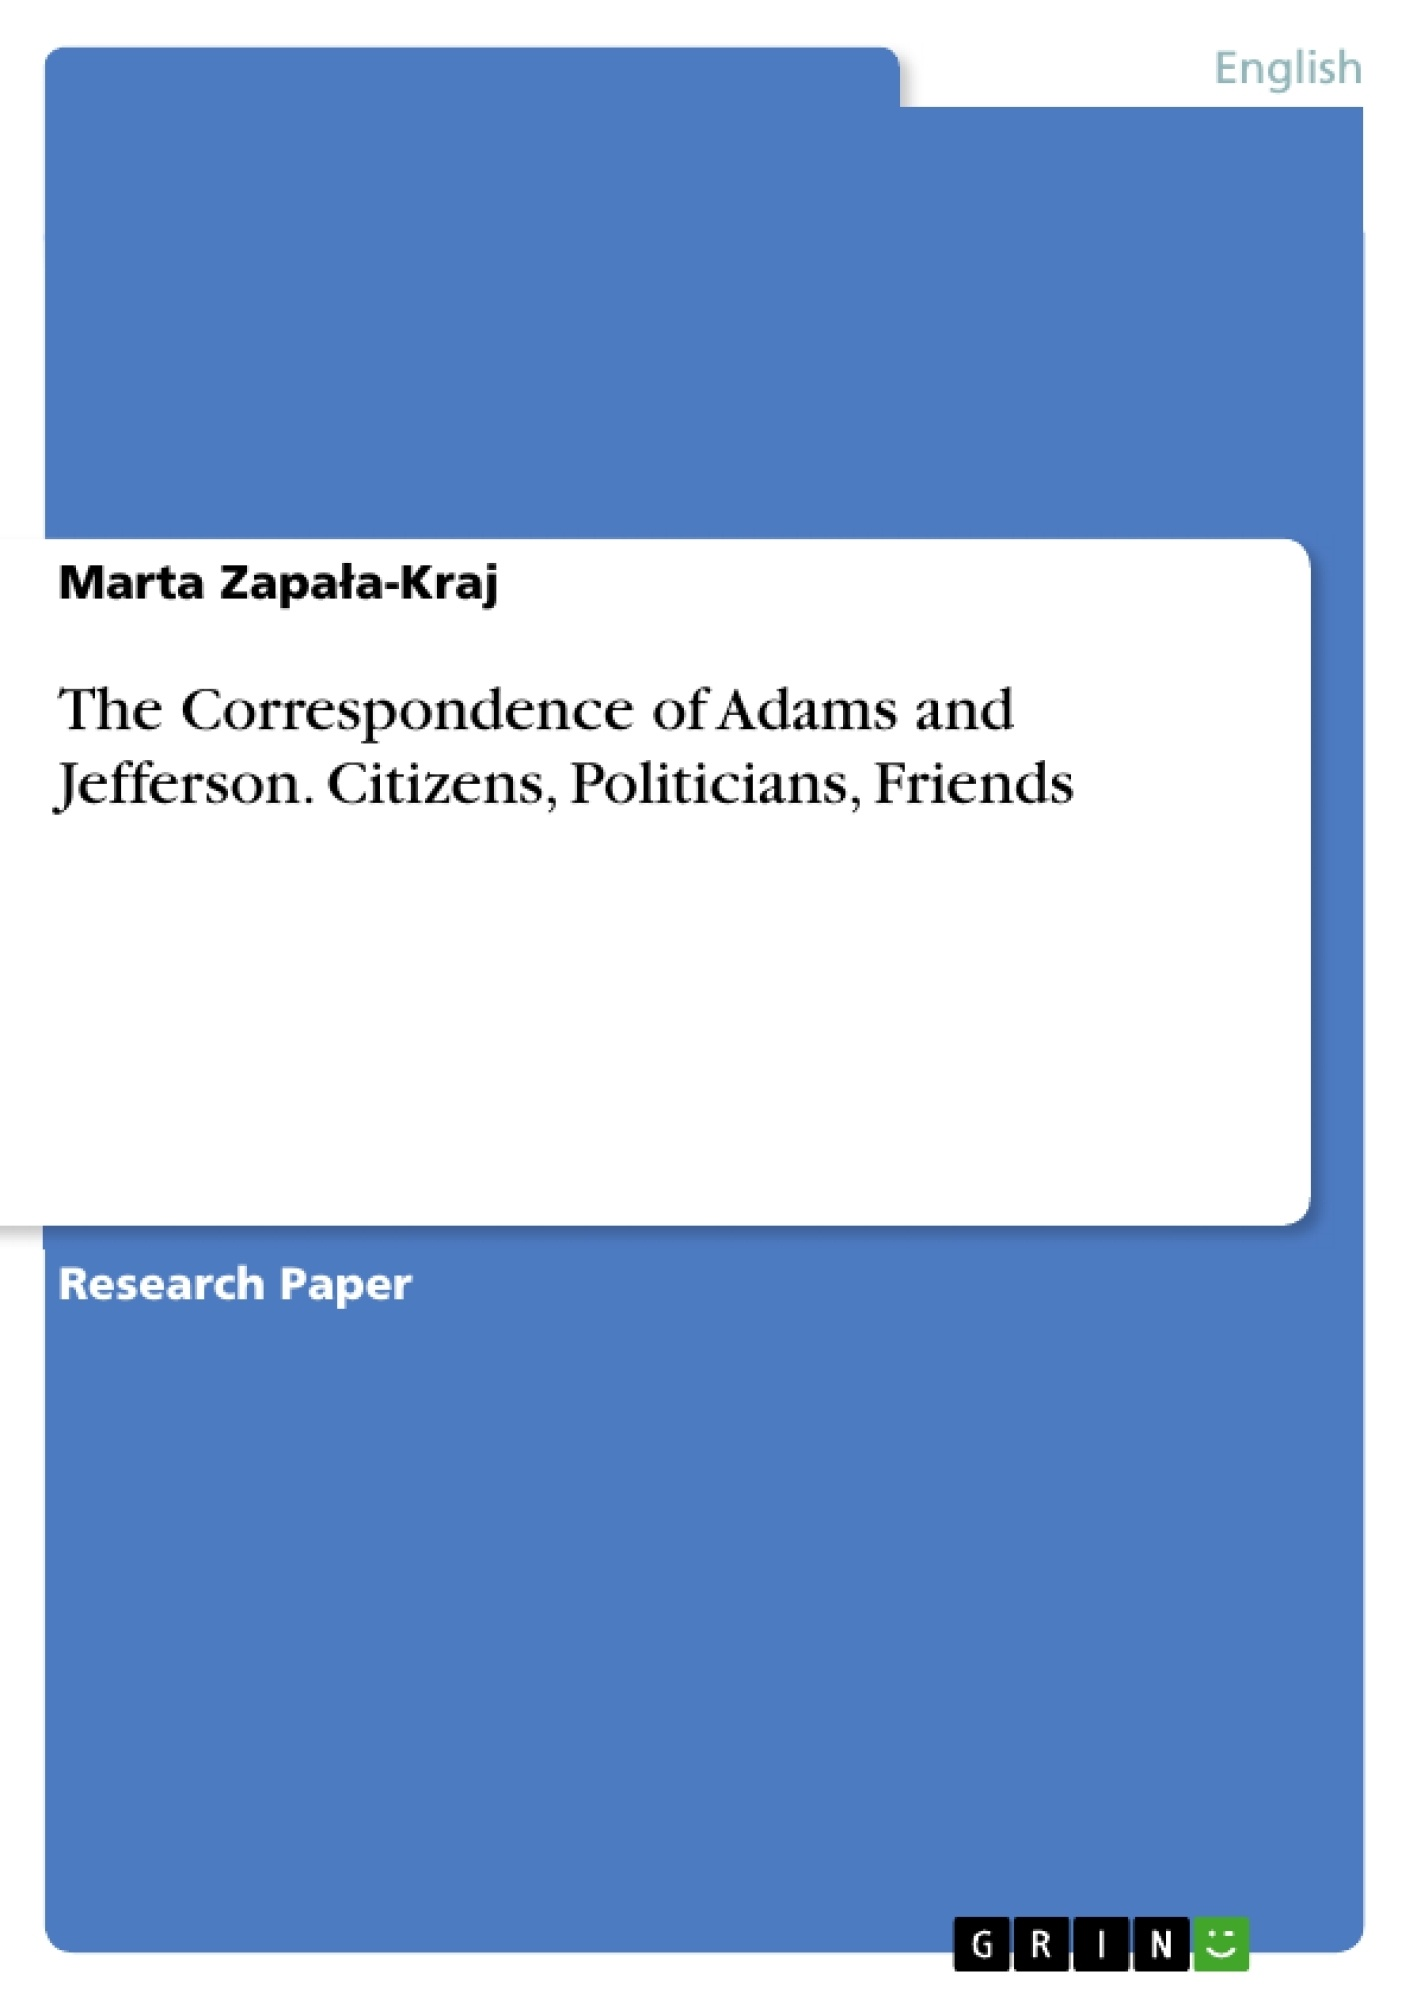 Title: The Correspondence of Adams and Jefferson. Citizens, Politicians, Friends